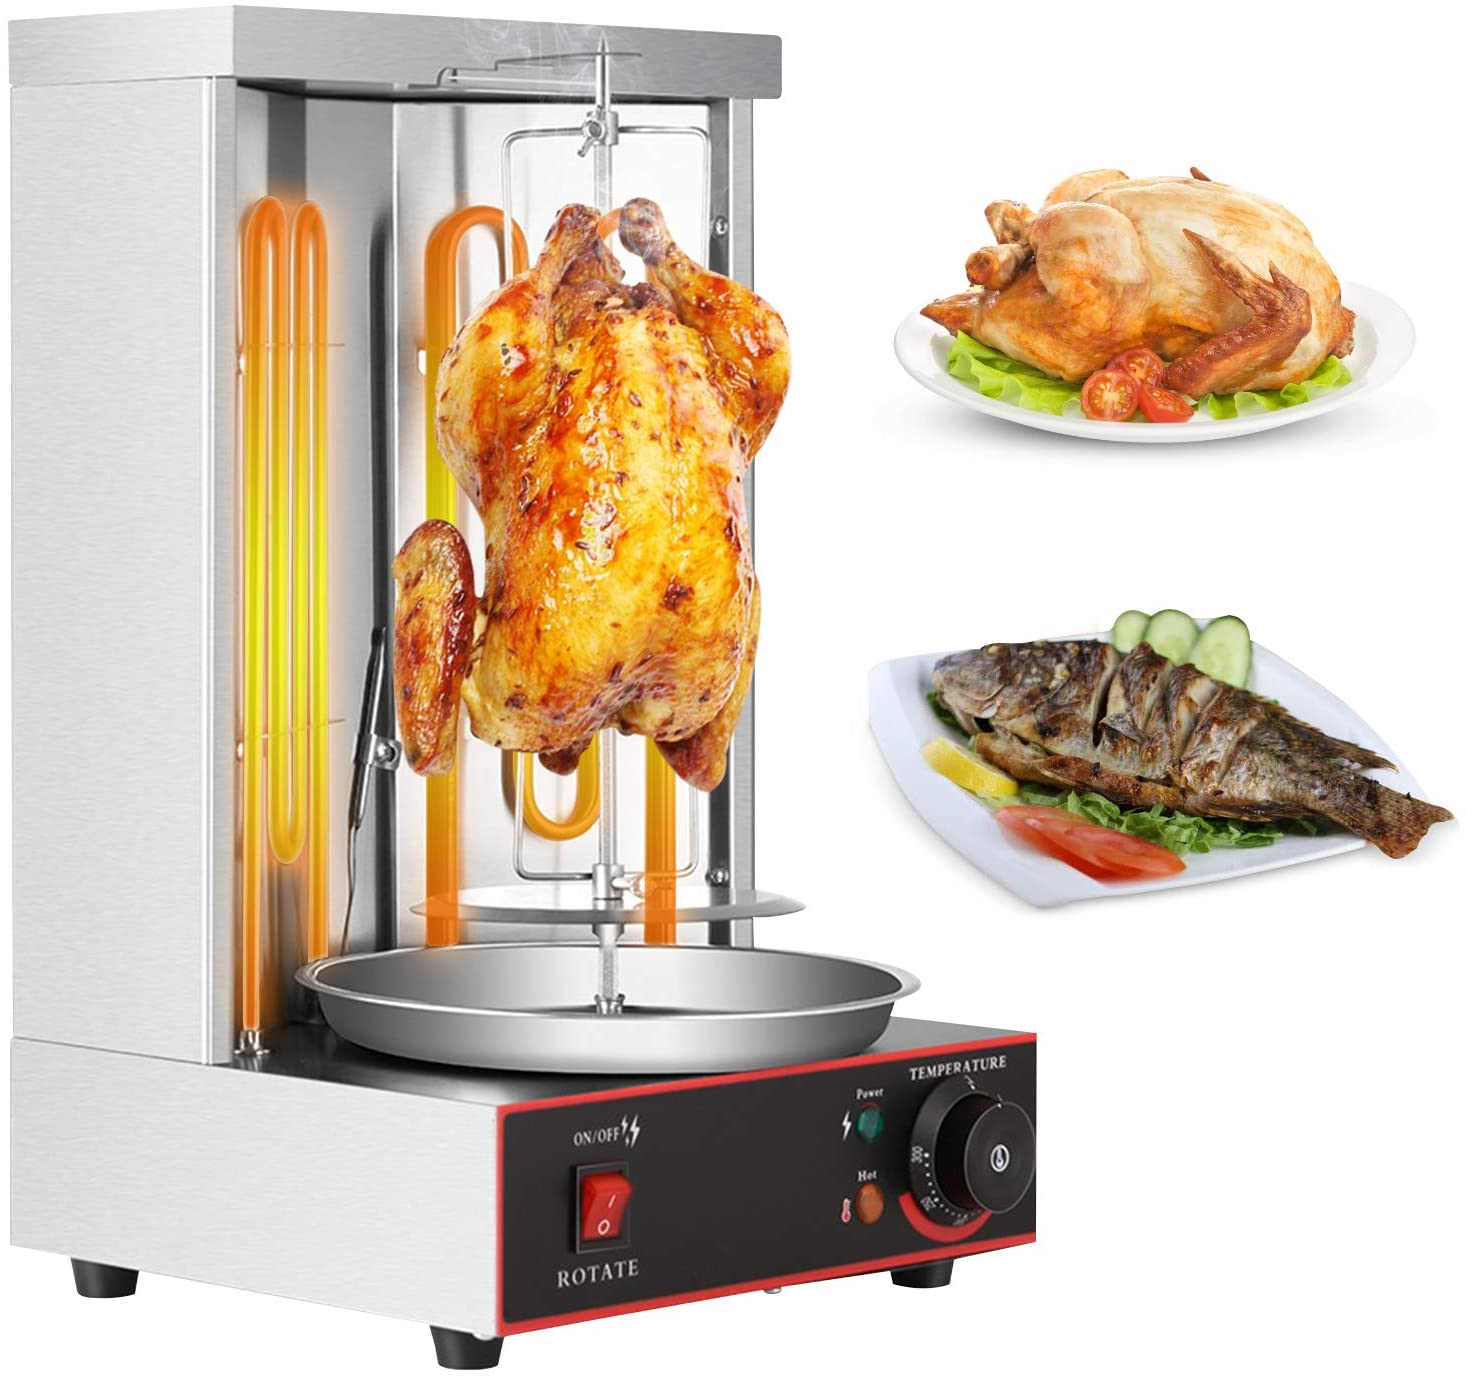 Gyro Grill Machine Electric Shawarma Grill SEAAN Doner Kebab Vertical Rotisserie Broiler Temperature Adjustable 122°F-572°F 3000W